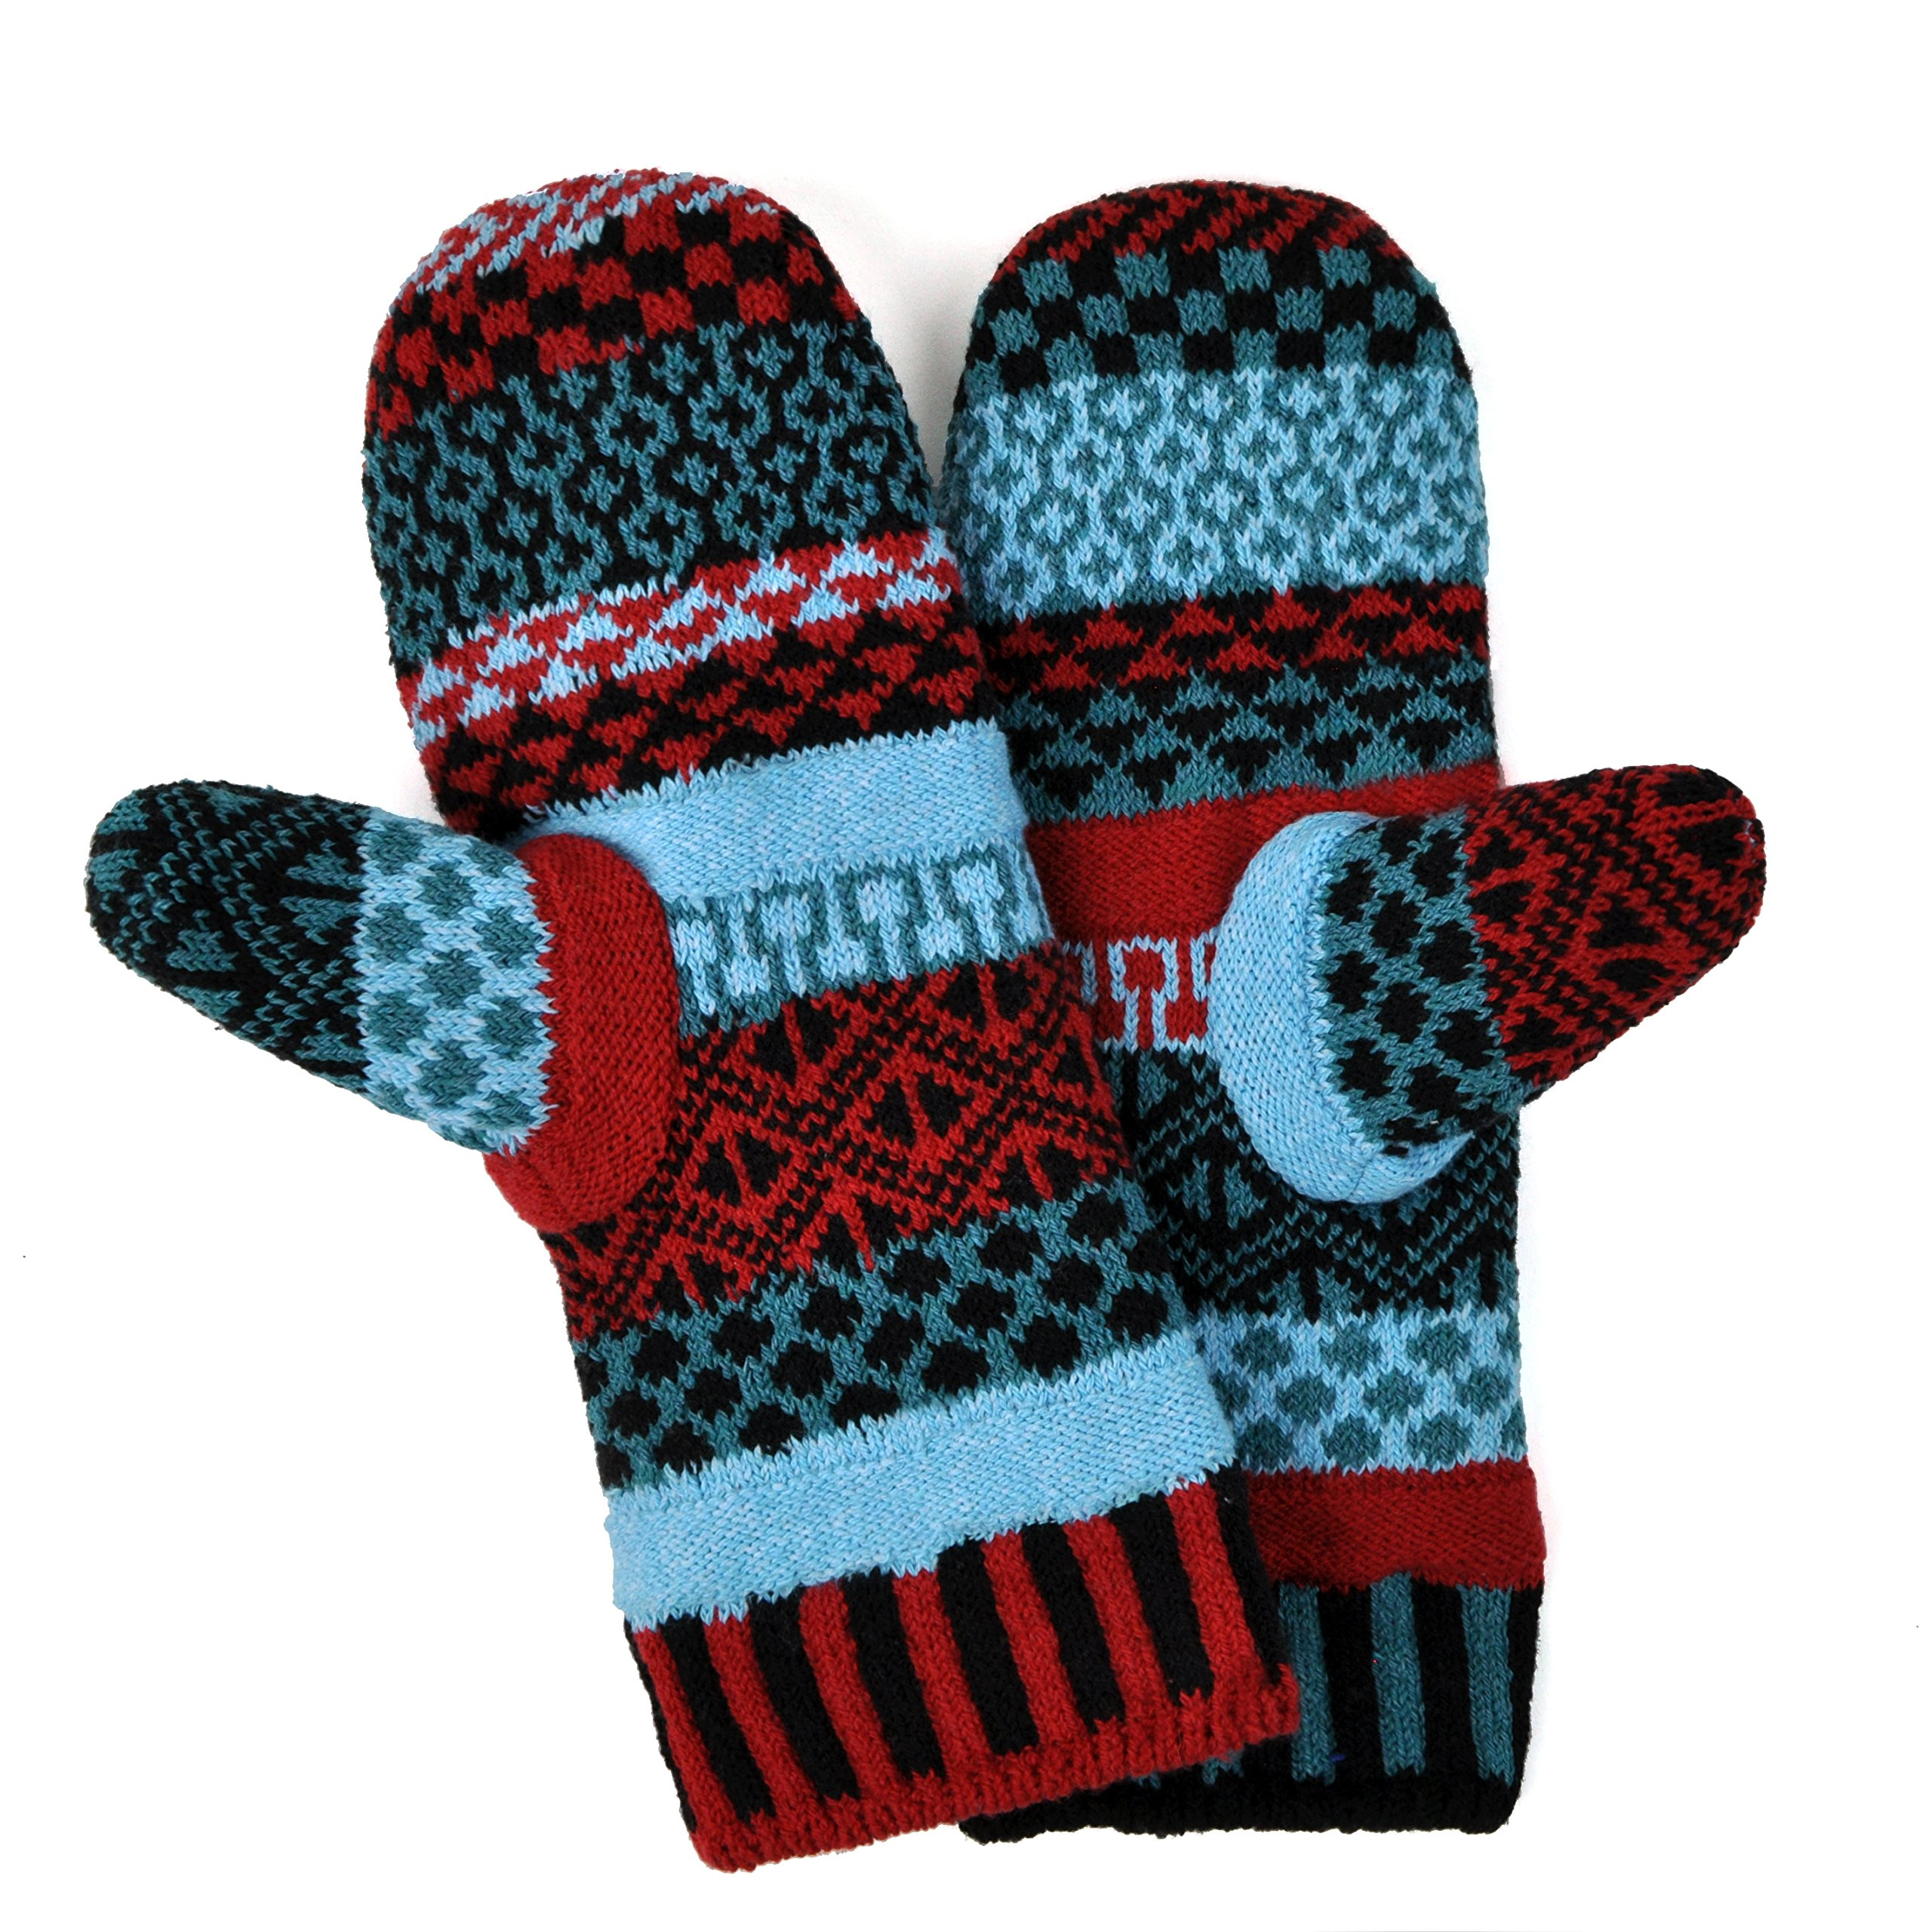 Solmate Brand USA Made Mismatched Fleece Lined Mittens, Mars